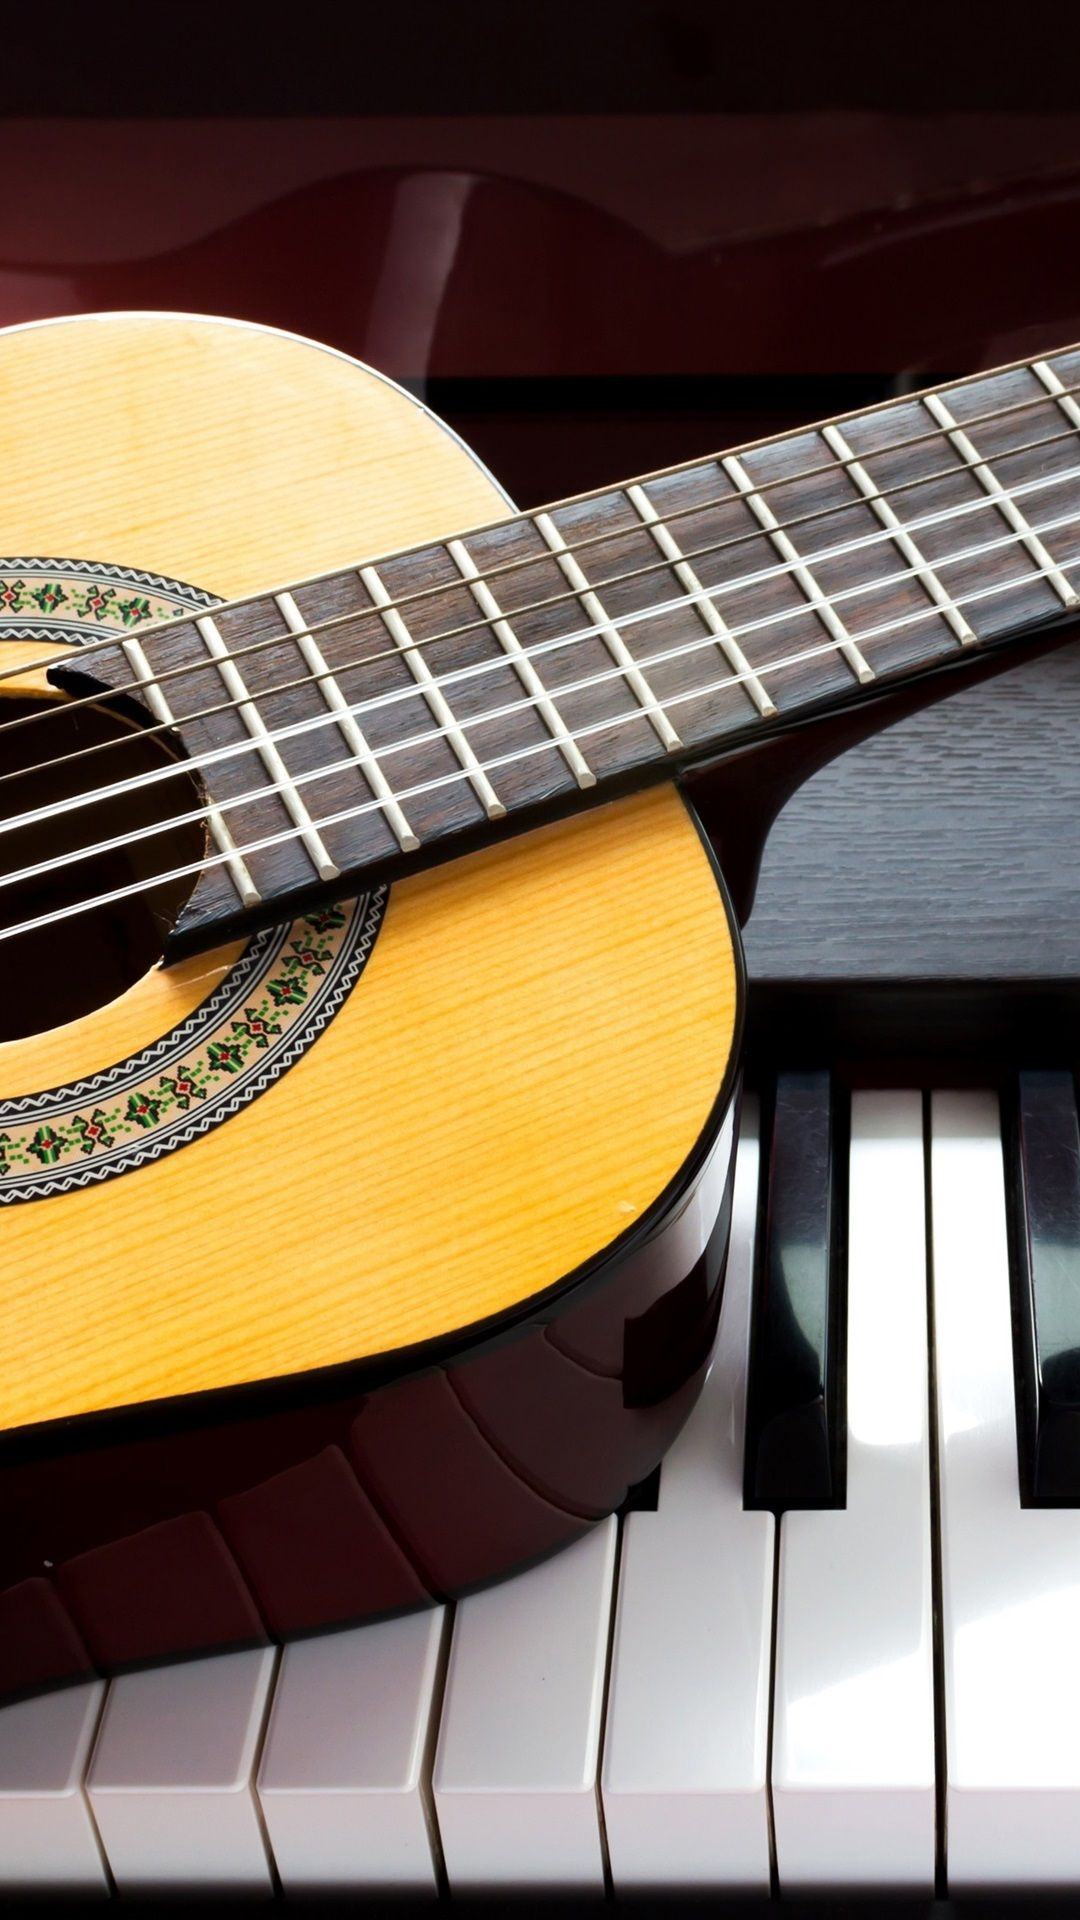 Piano and Guitar Wallpapers on WallpaperDog